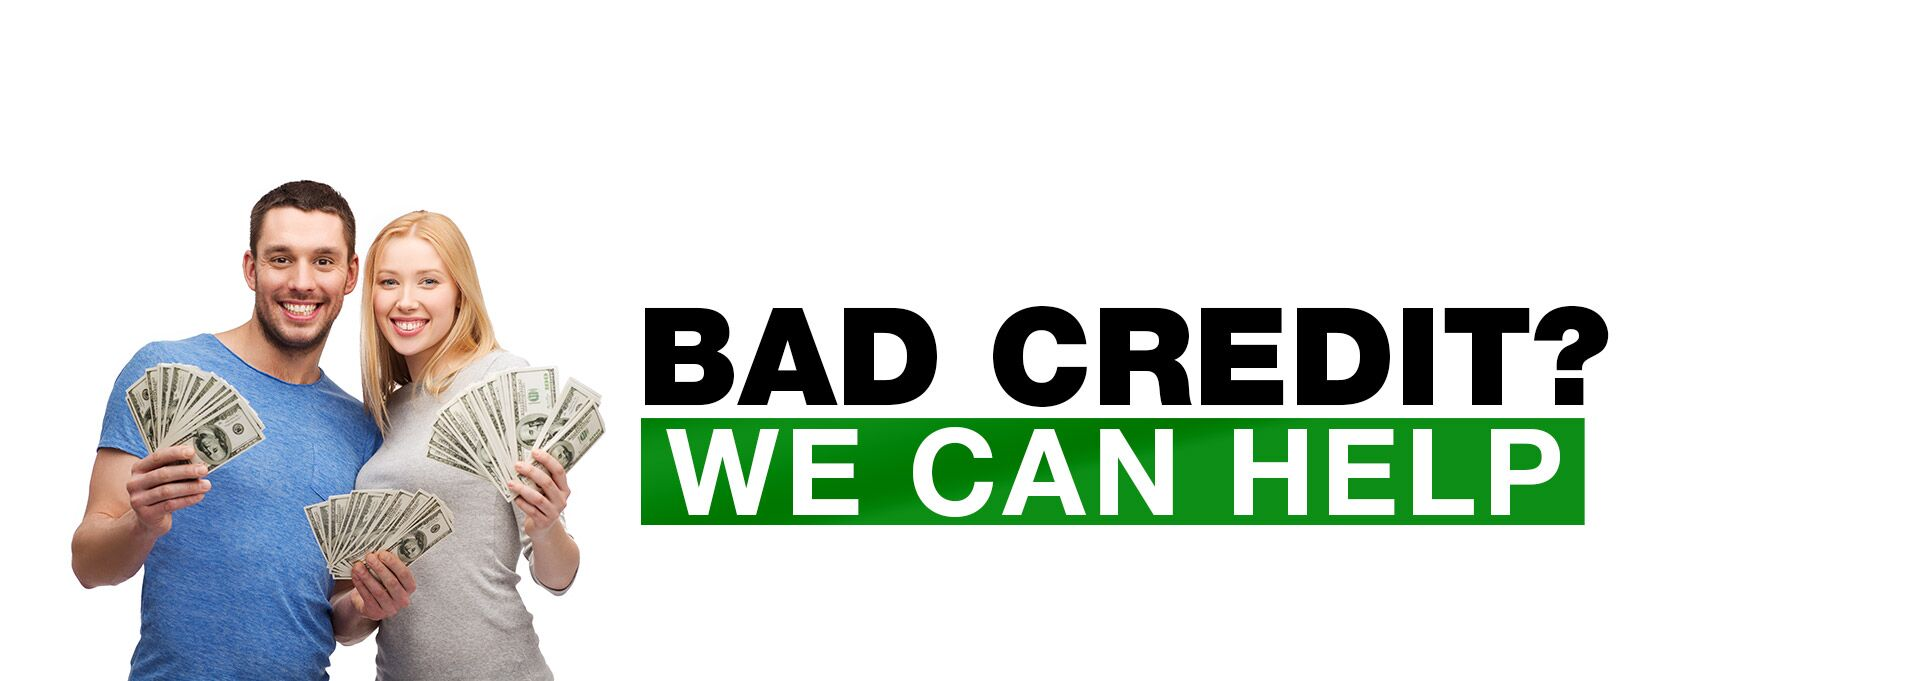 Bad Credit? We Can Help.